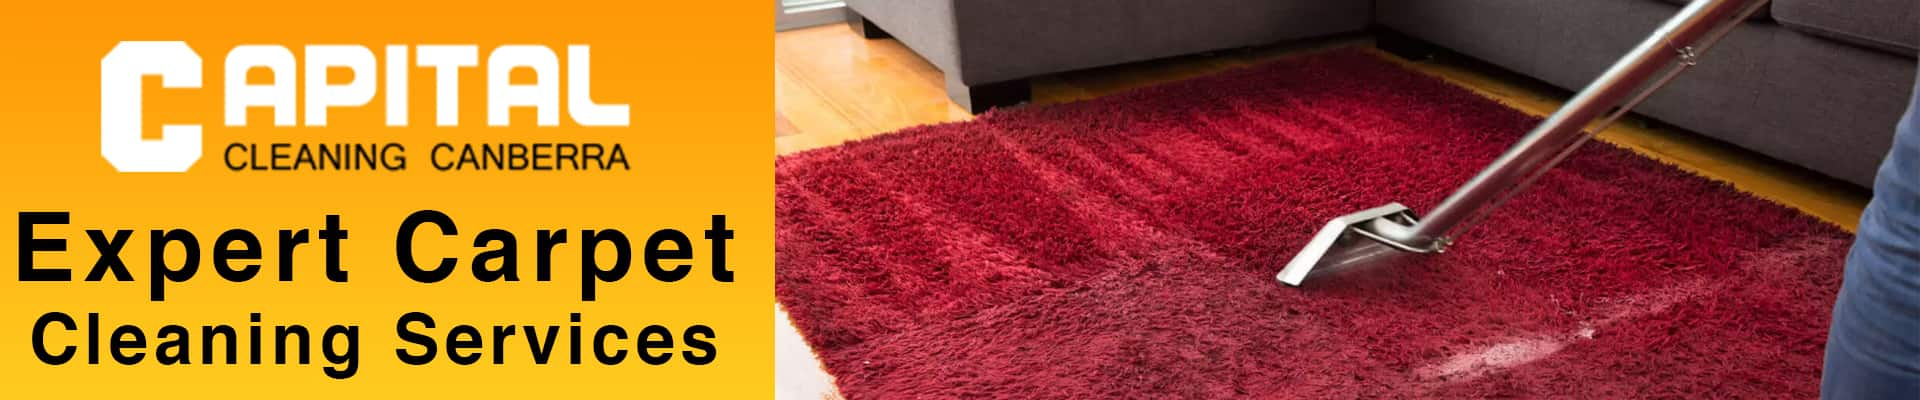 Expert Carpet Cleaning Services Barton